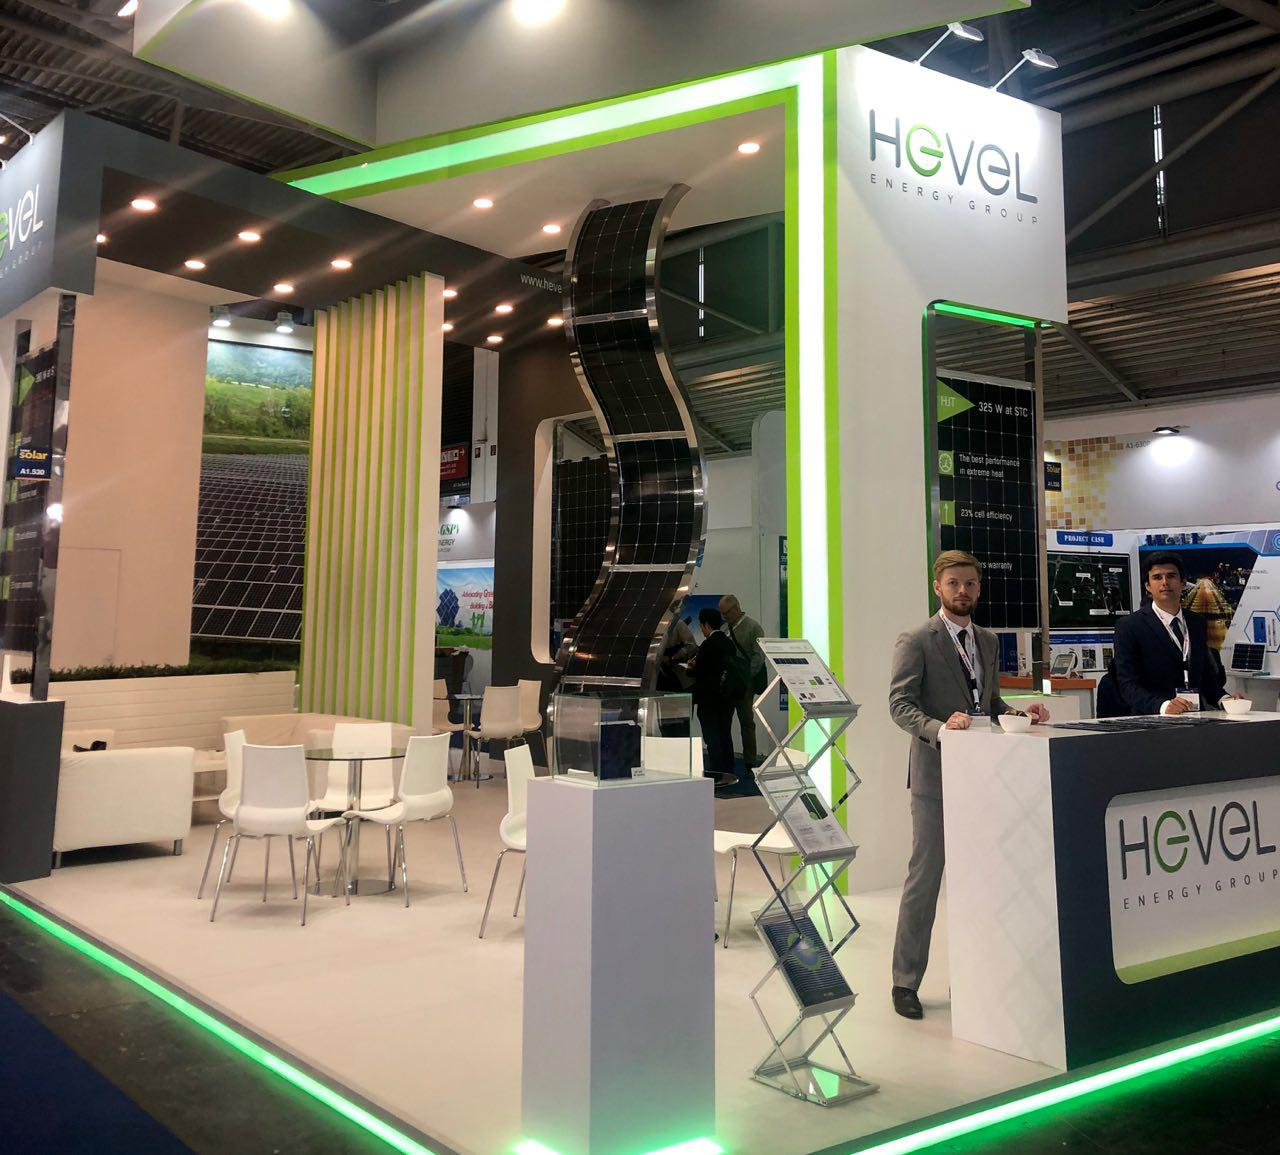 At Intersolar Europe, Hevel showcased a new HJ bifacial solar modules with a power output of up to 380Wp as well as 60-cell HJ modules with a power output of 325Wp. Image: Hevel Group